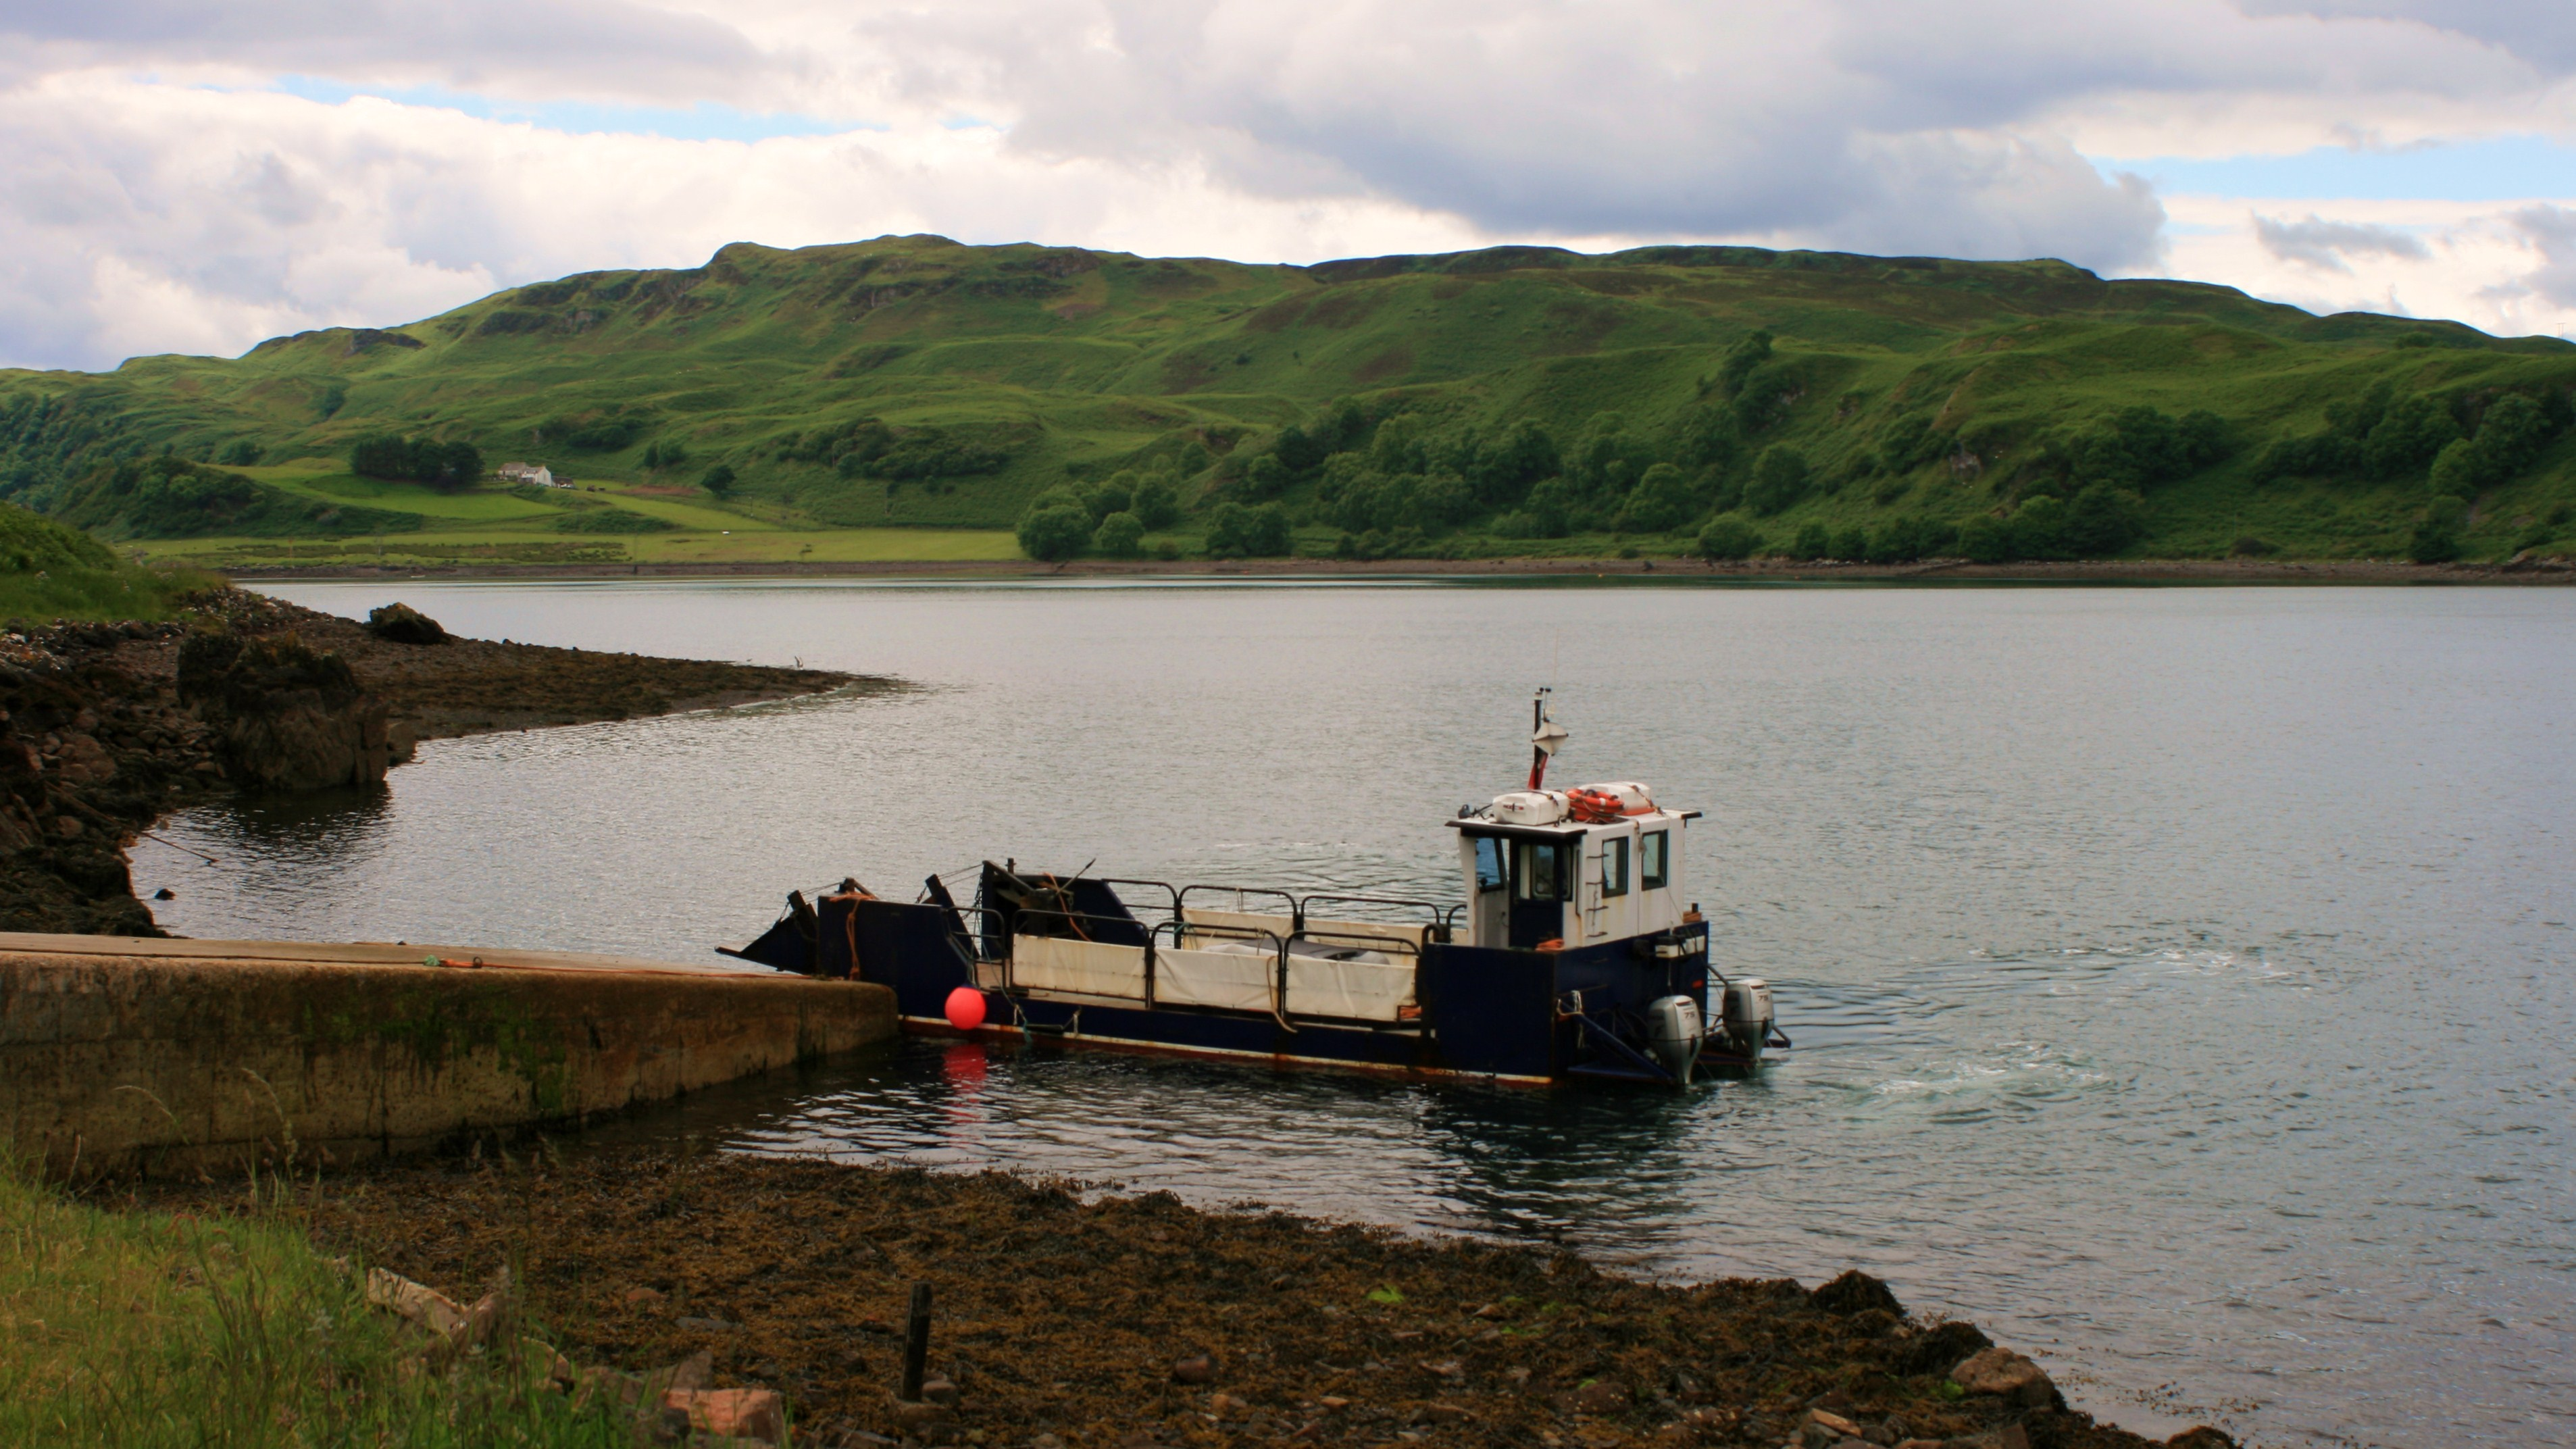 Gylen Lady at Gallanach (Ships of CalMac)